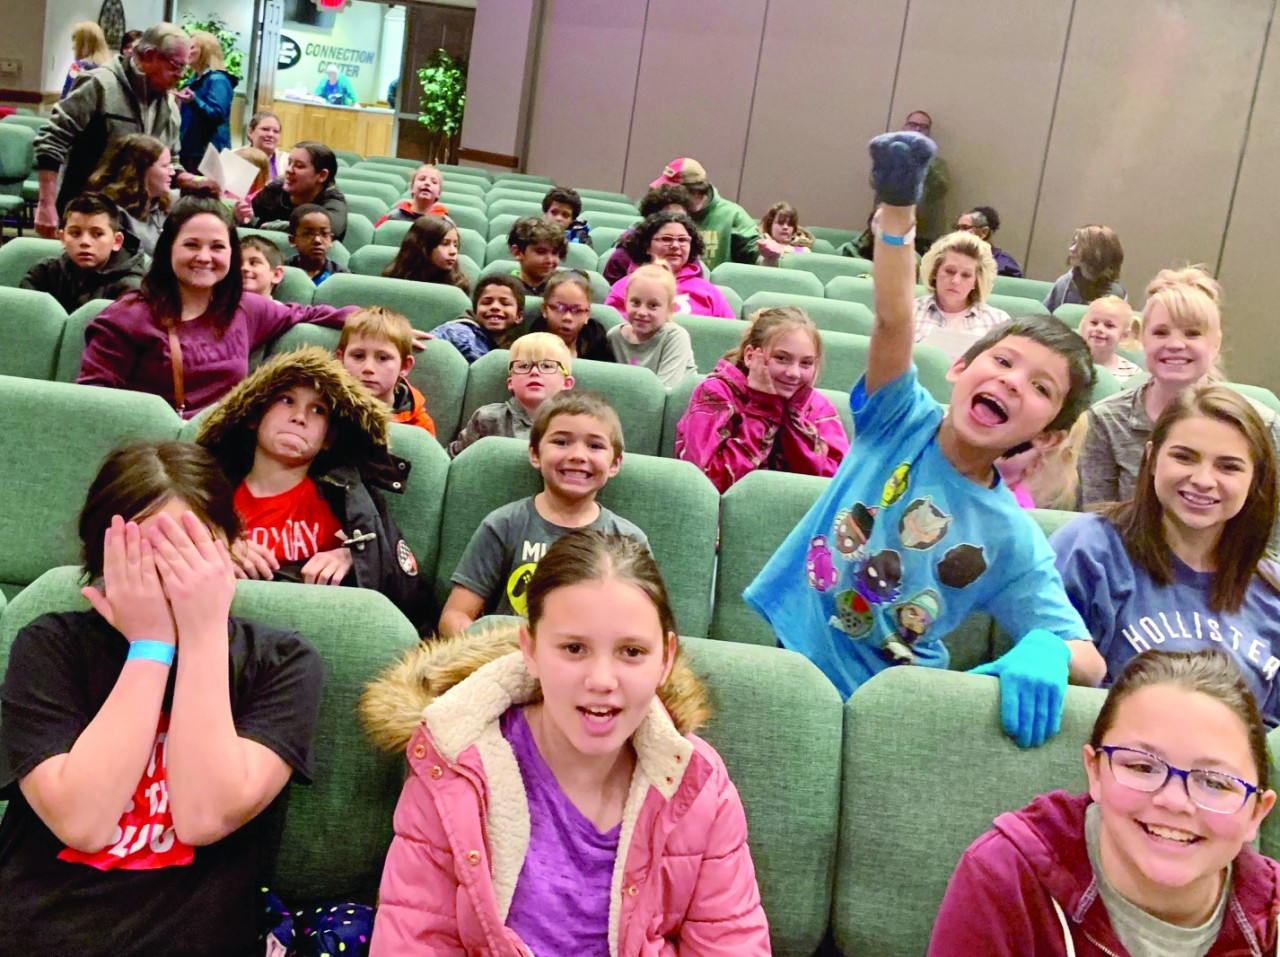 Mission Ignition fires kids' imaginations for missions